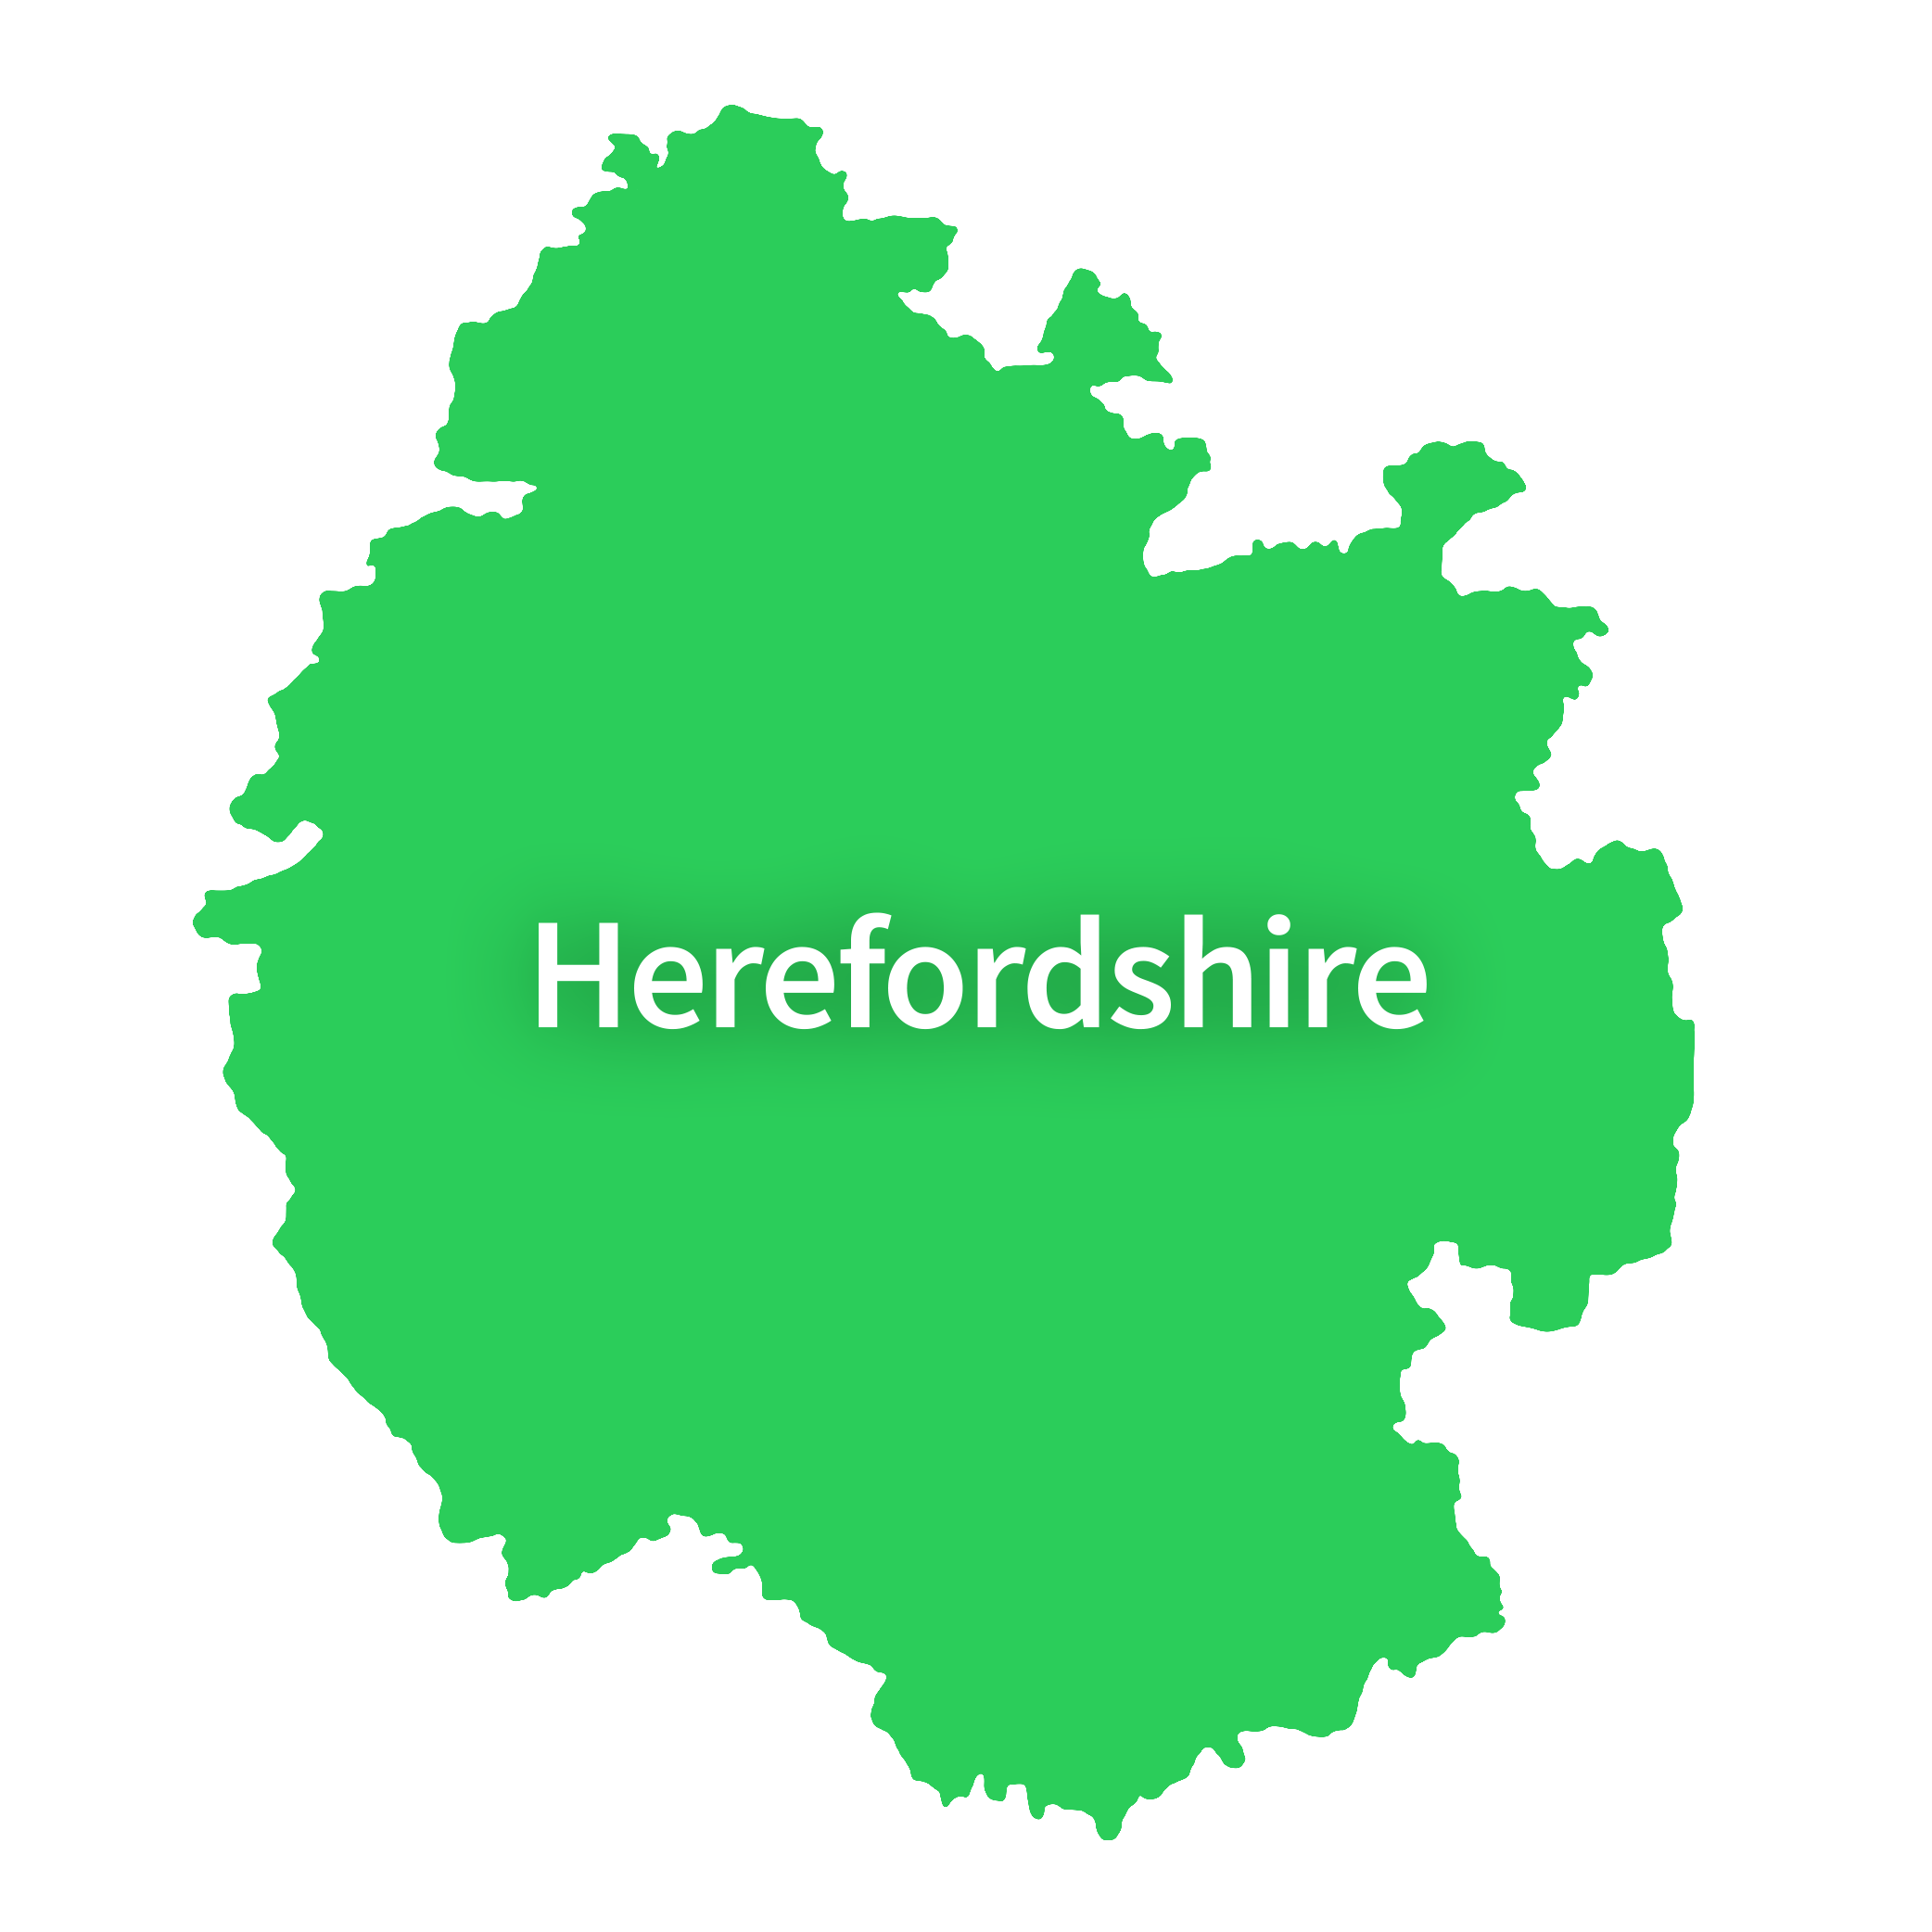 Map of Herefordshire